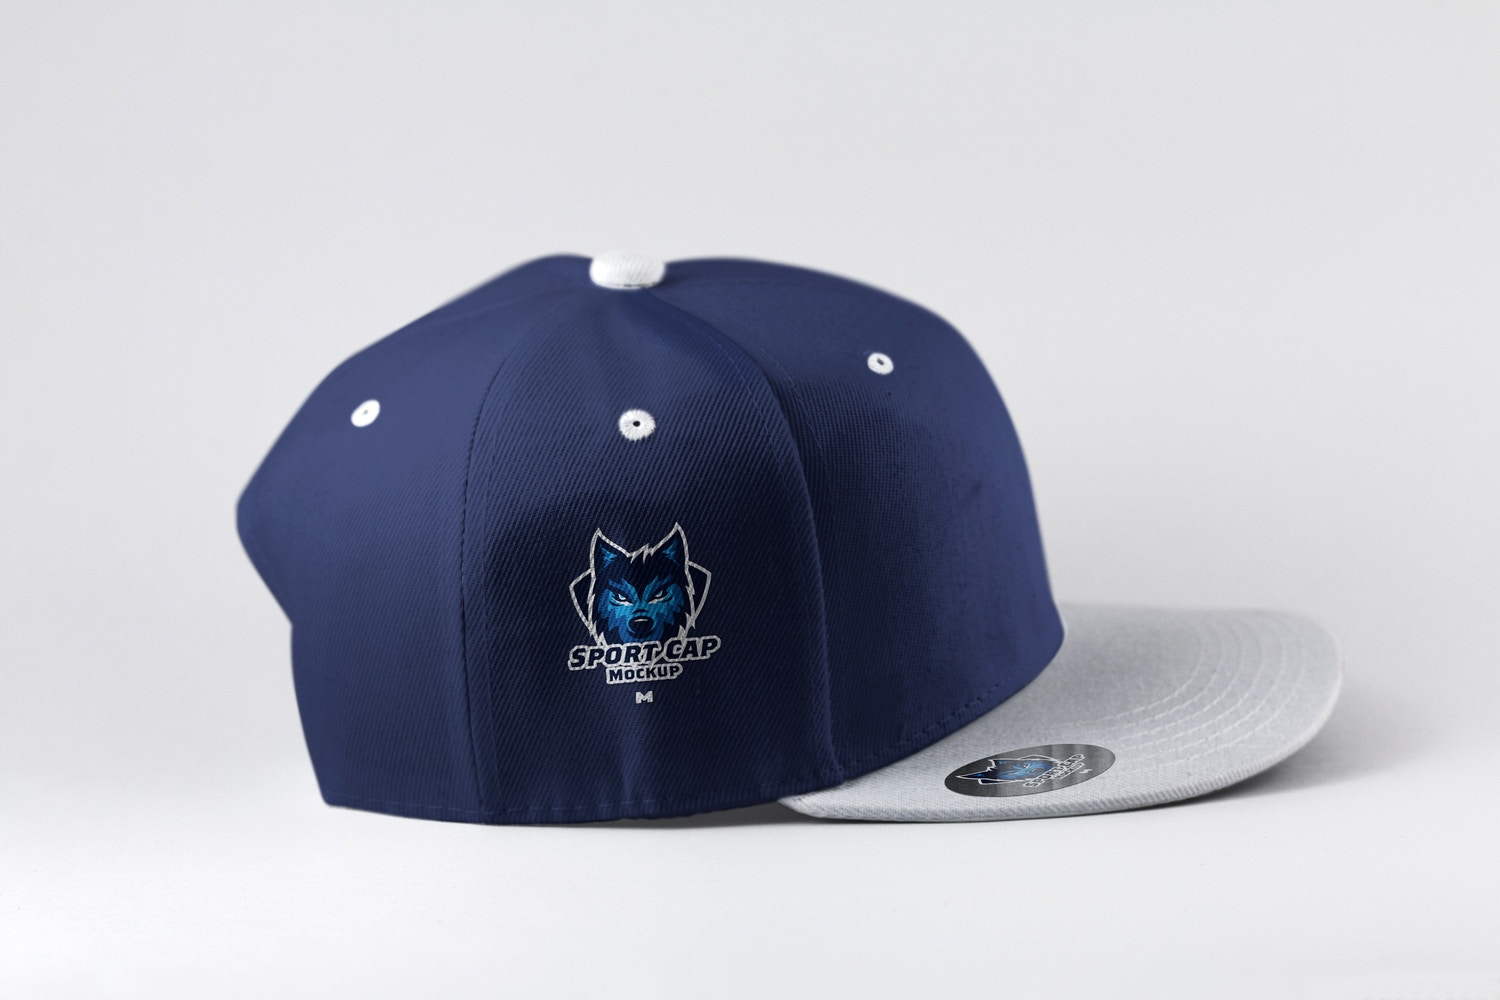 Sports Cap Side View Mockup 01 by Original Mockups on Original Mockups